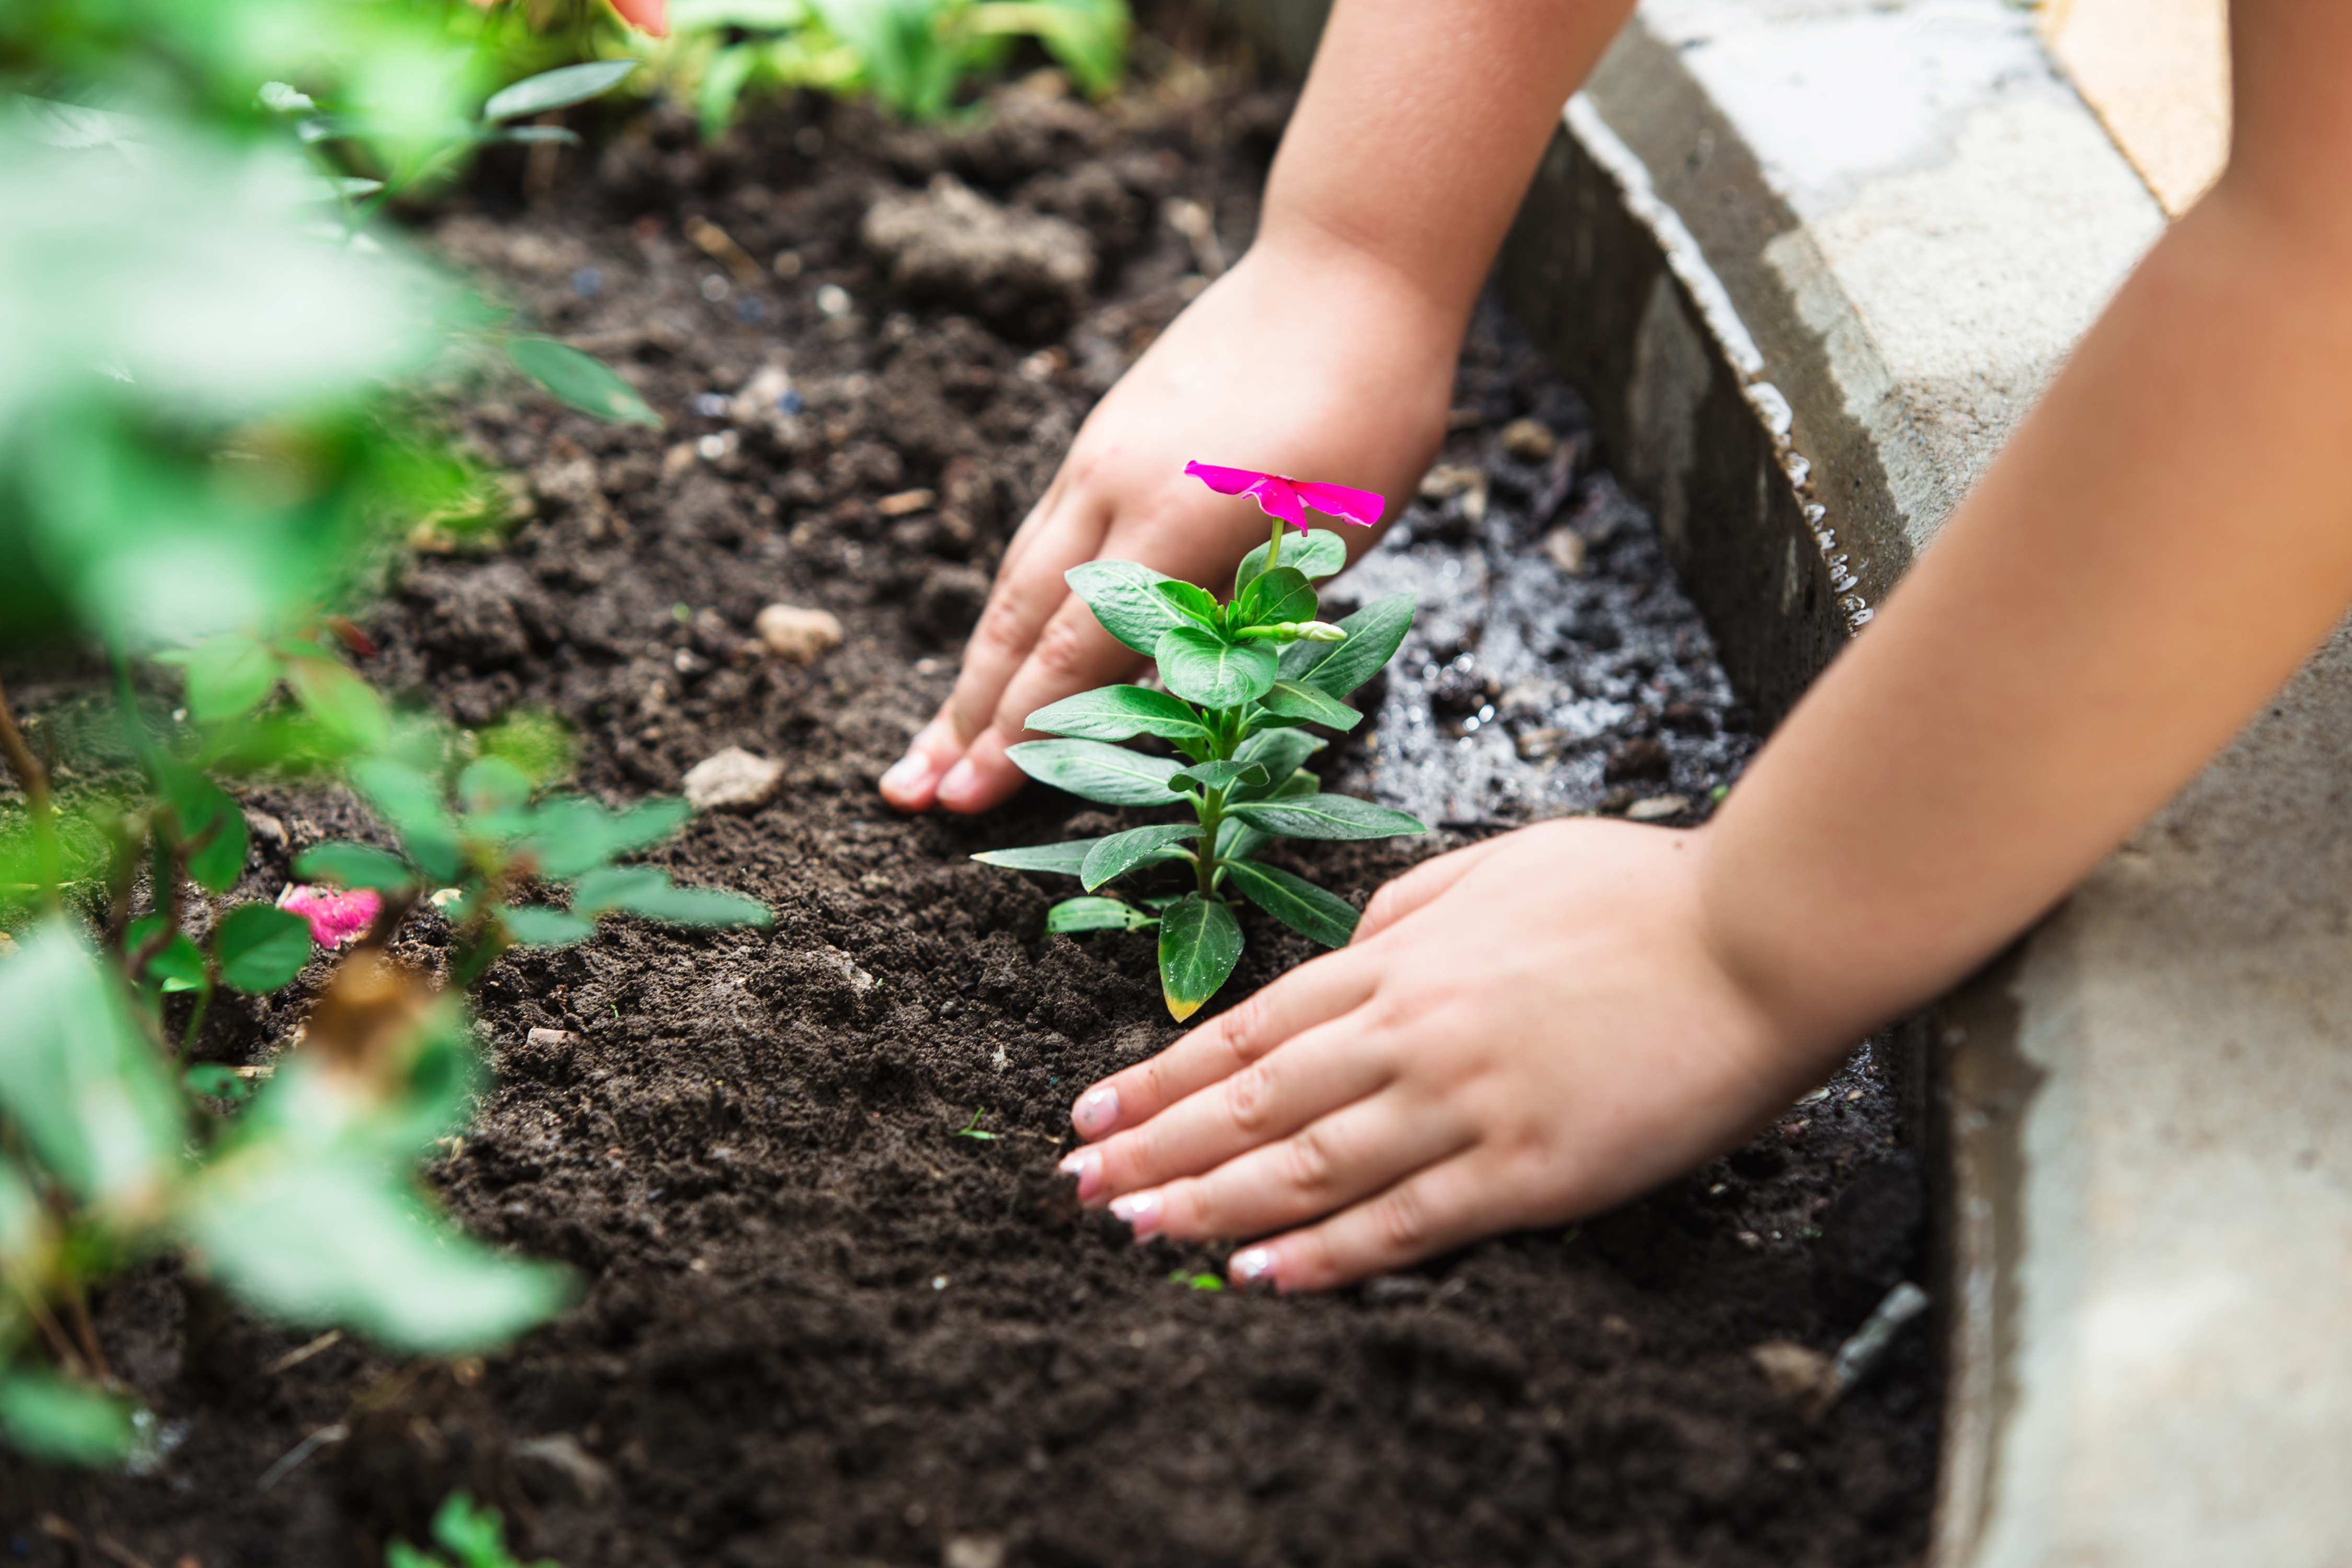 Spending time with children in the garden is an experience they will always remember. Teach and encourage them to dig and plant - and care for other living things.